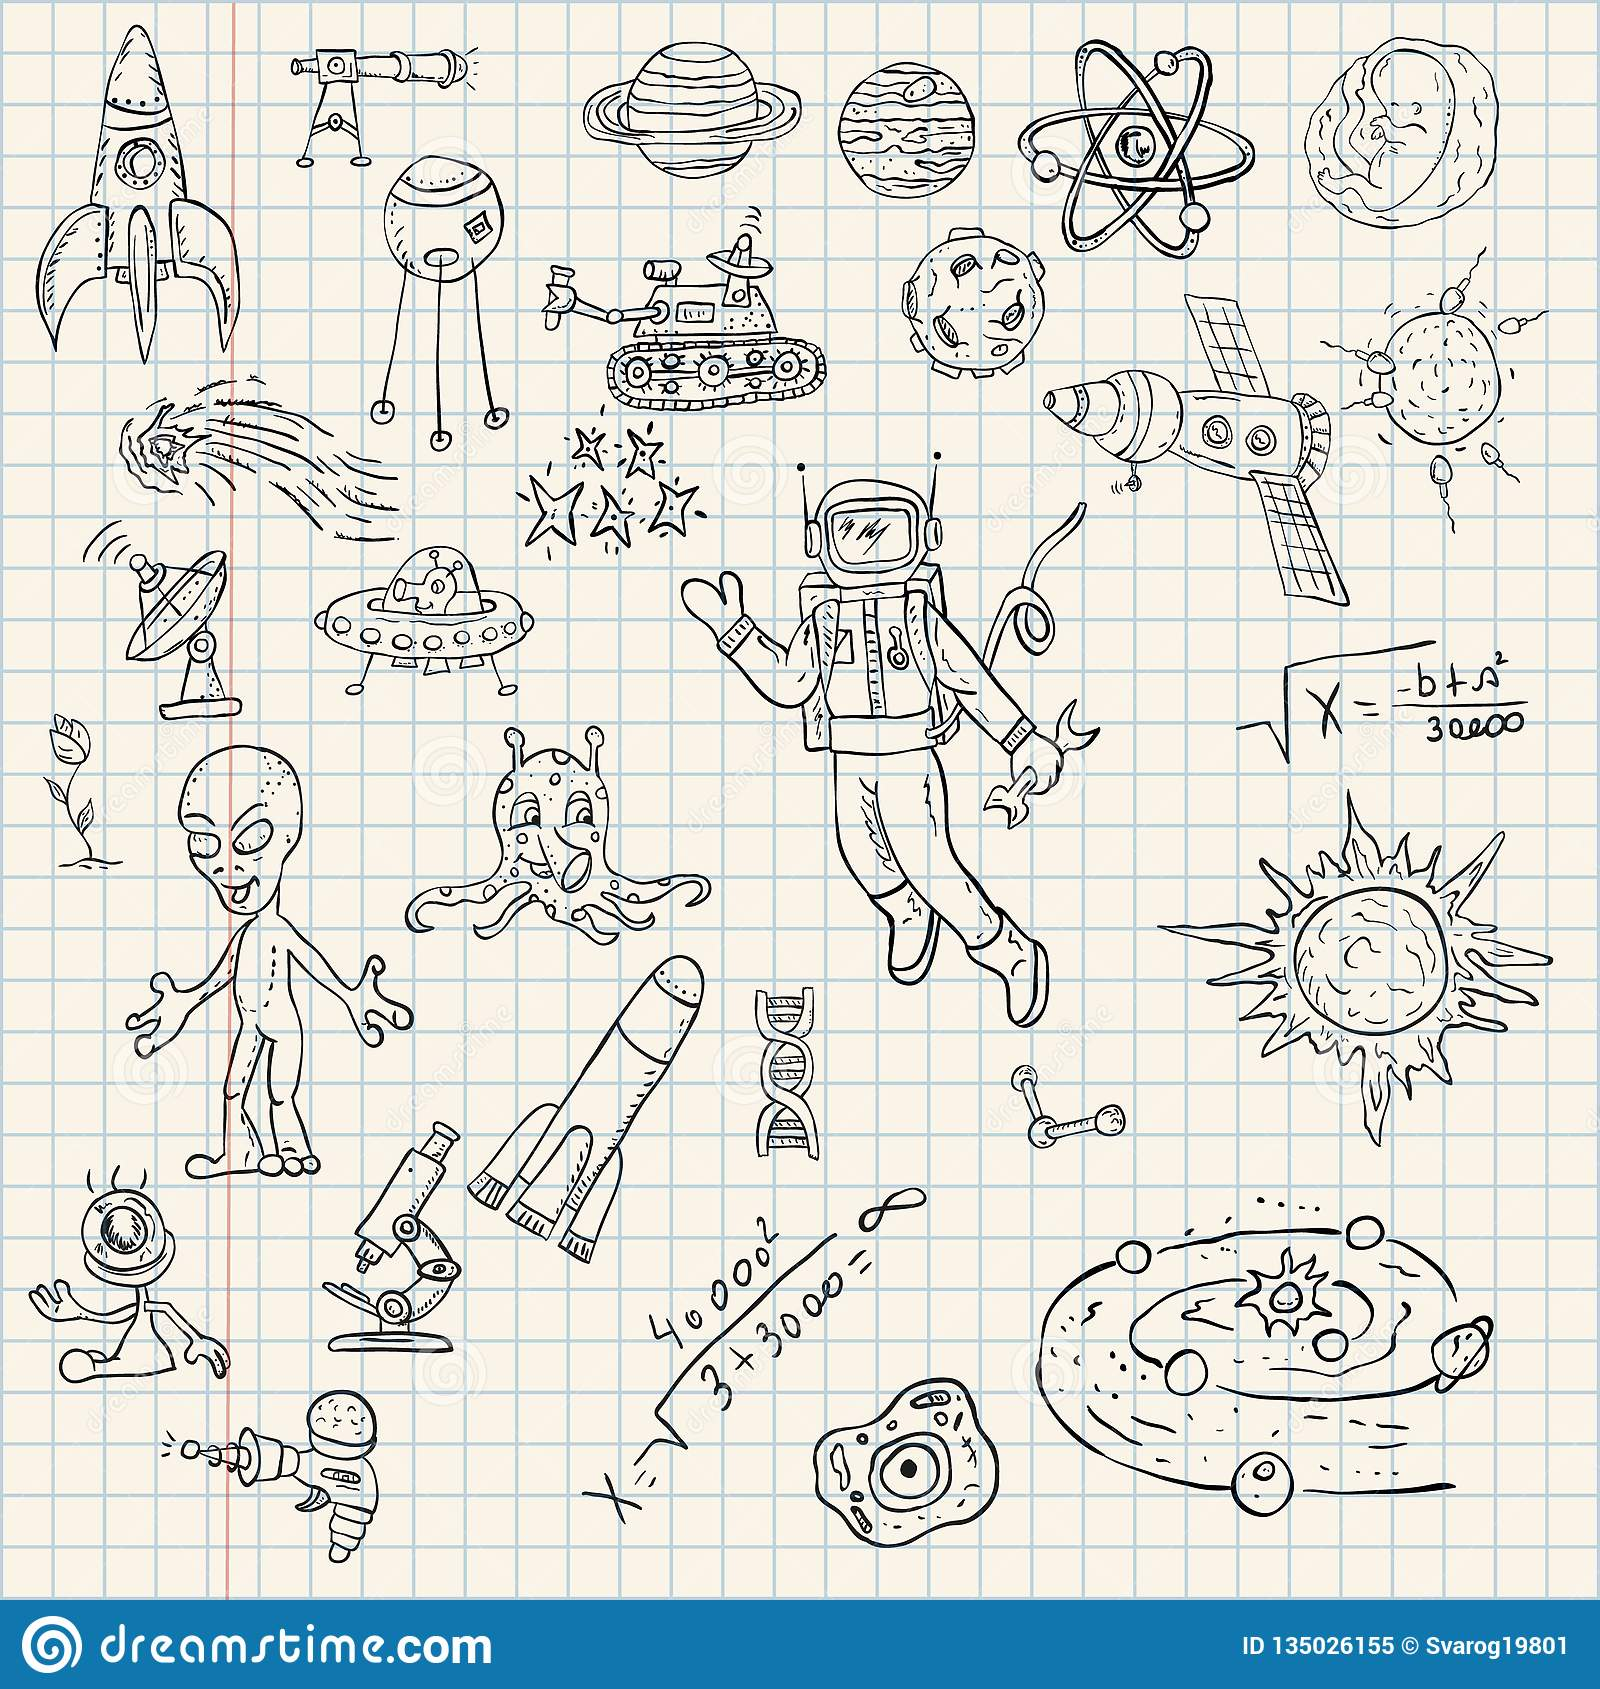 Childrens Drawings Coloring Pages On Space Theme Science